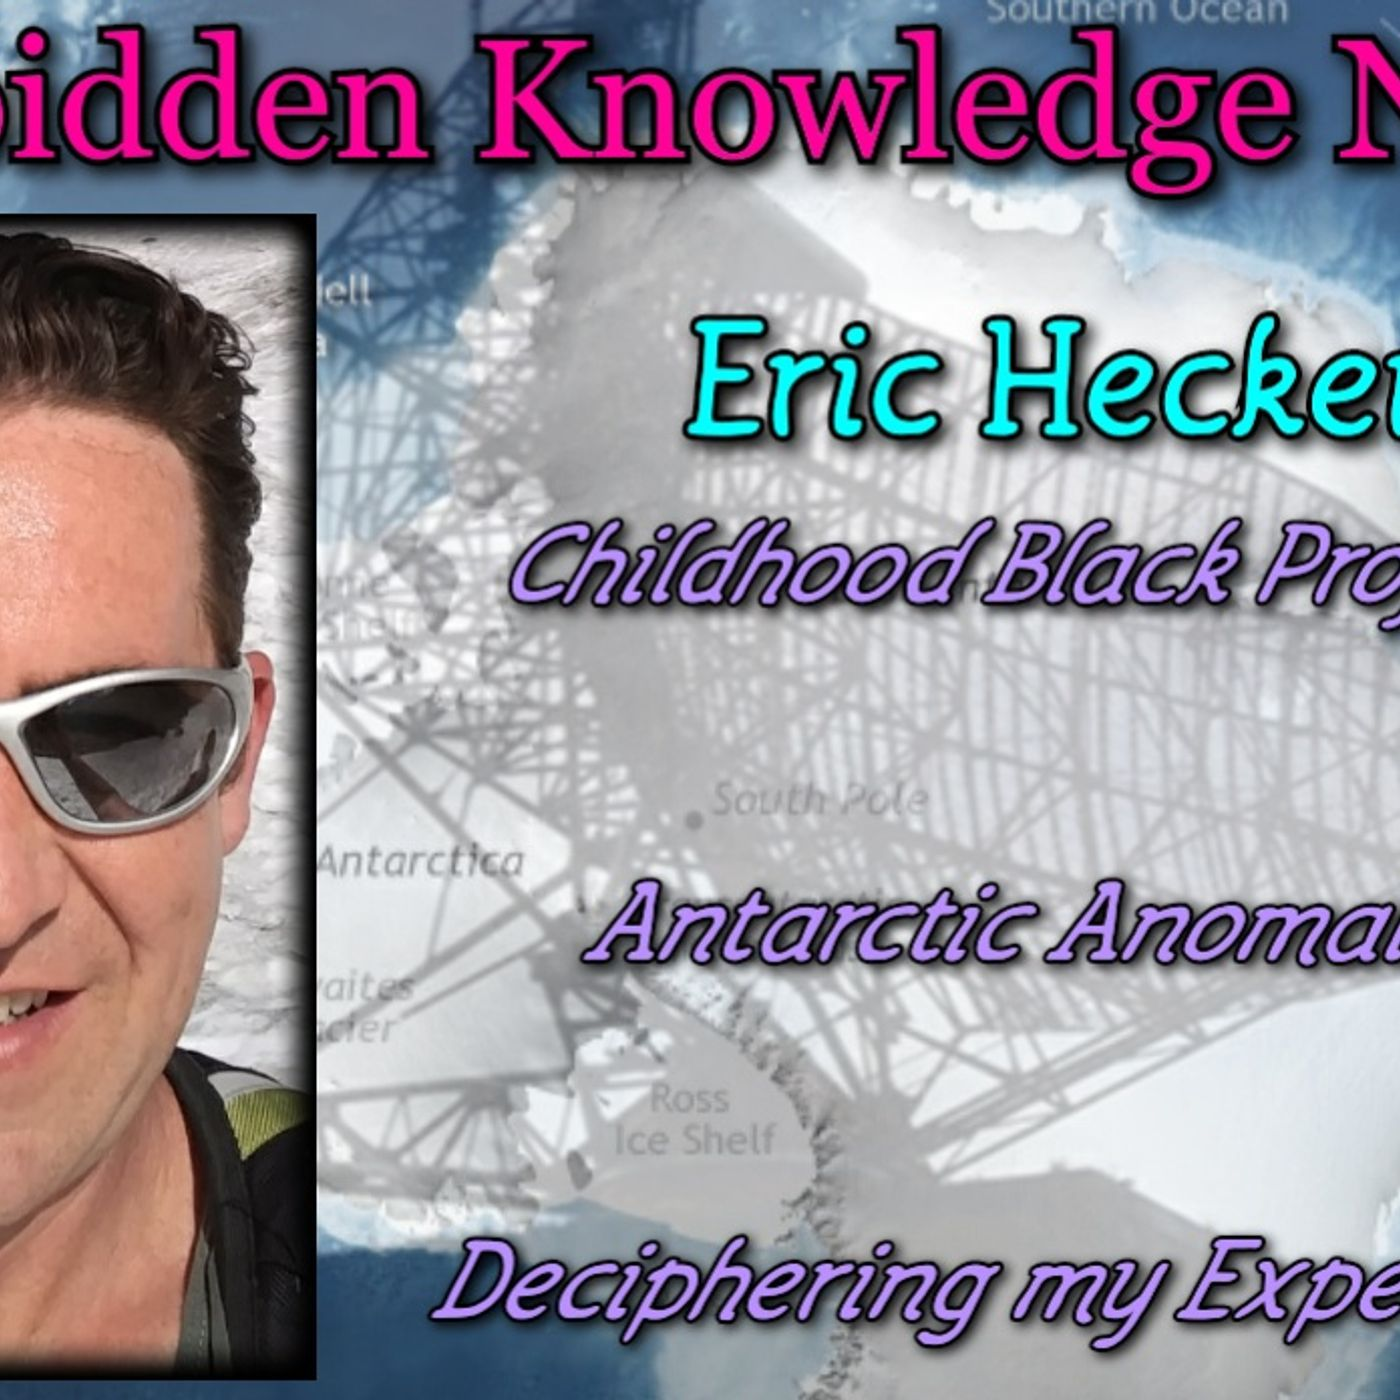 Childhood Black Projects - Antarctic Anomalies - Deciphering my Experience with Eric Hecker